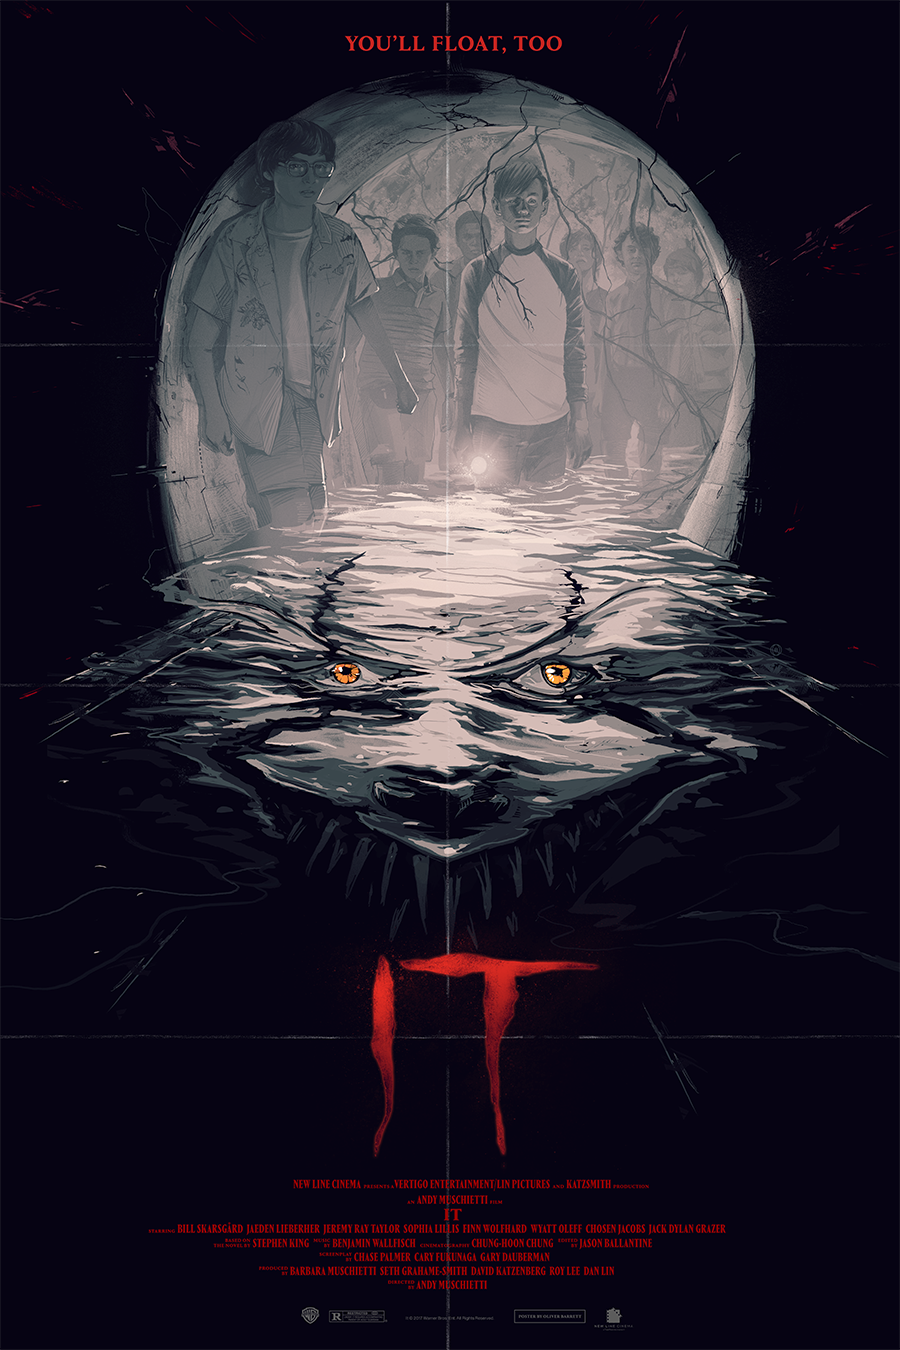 IT - Regal Cinemas / Warner Bros.promotional artwork for the film's theatrical release, featured on collectible tickets and posters.